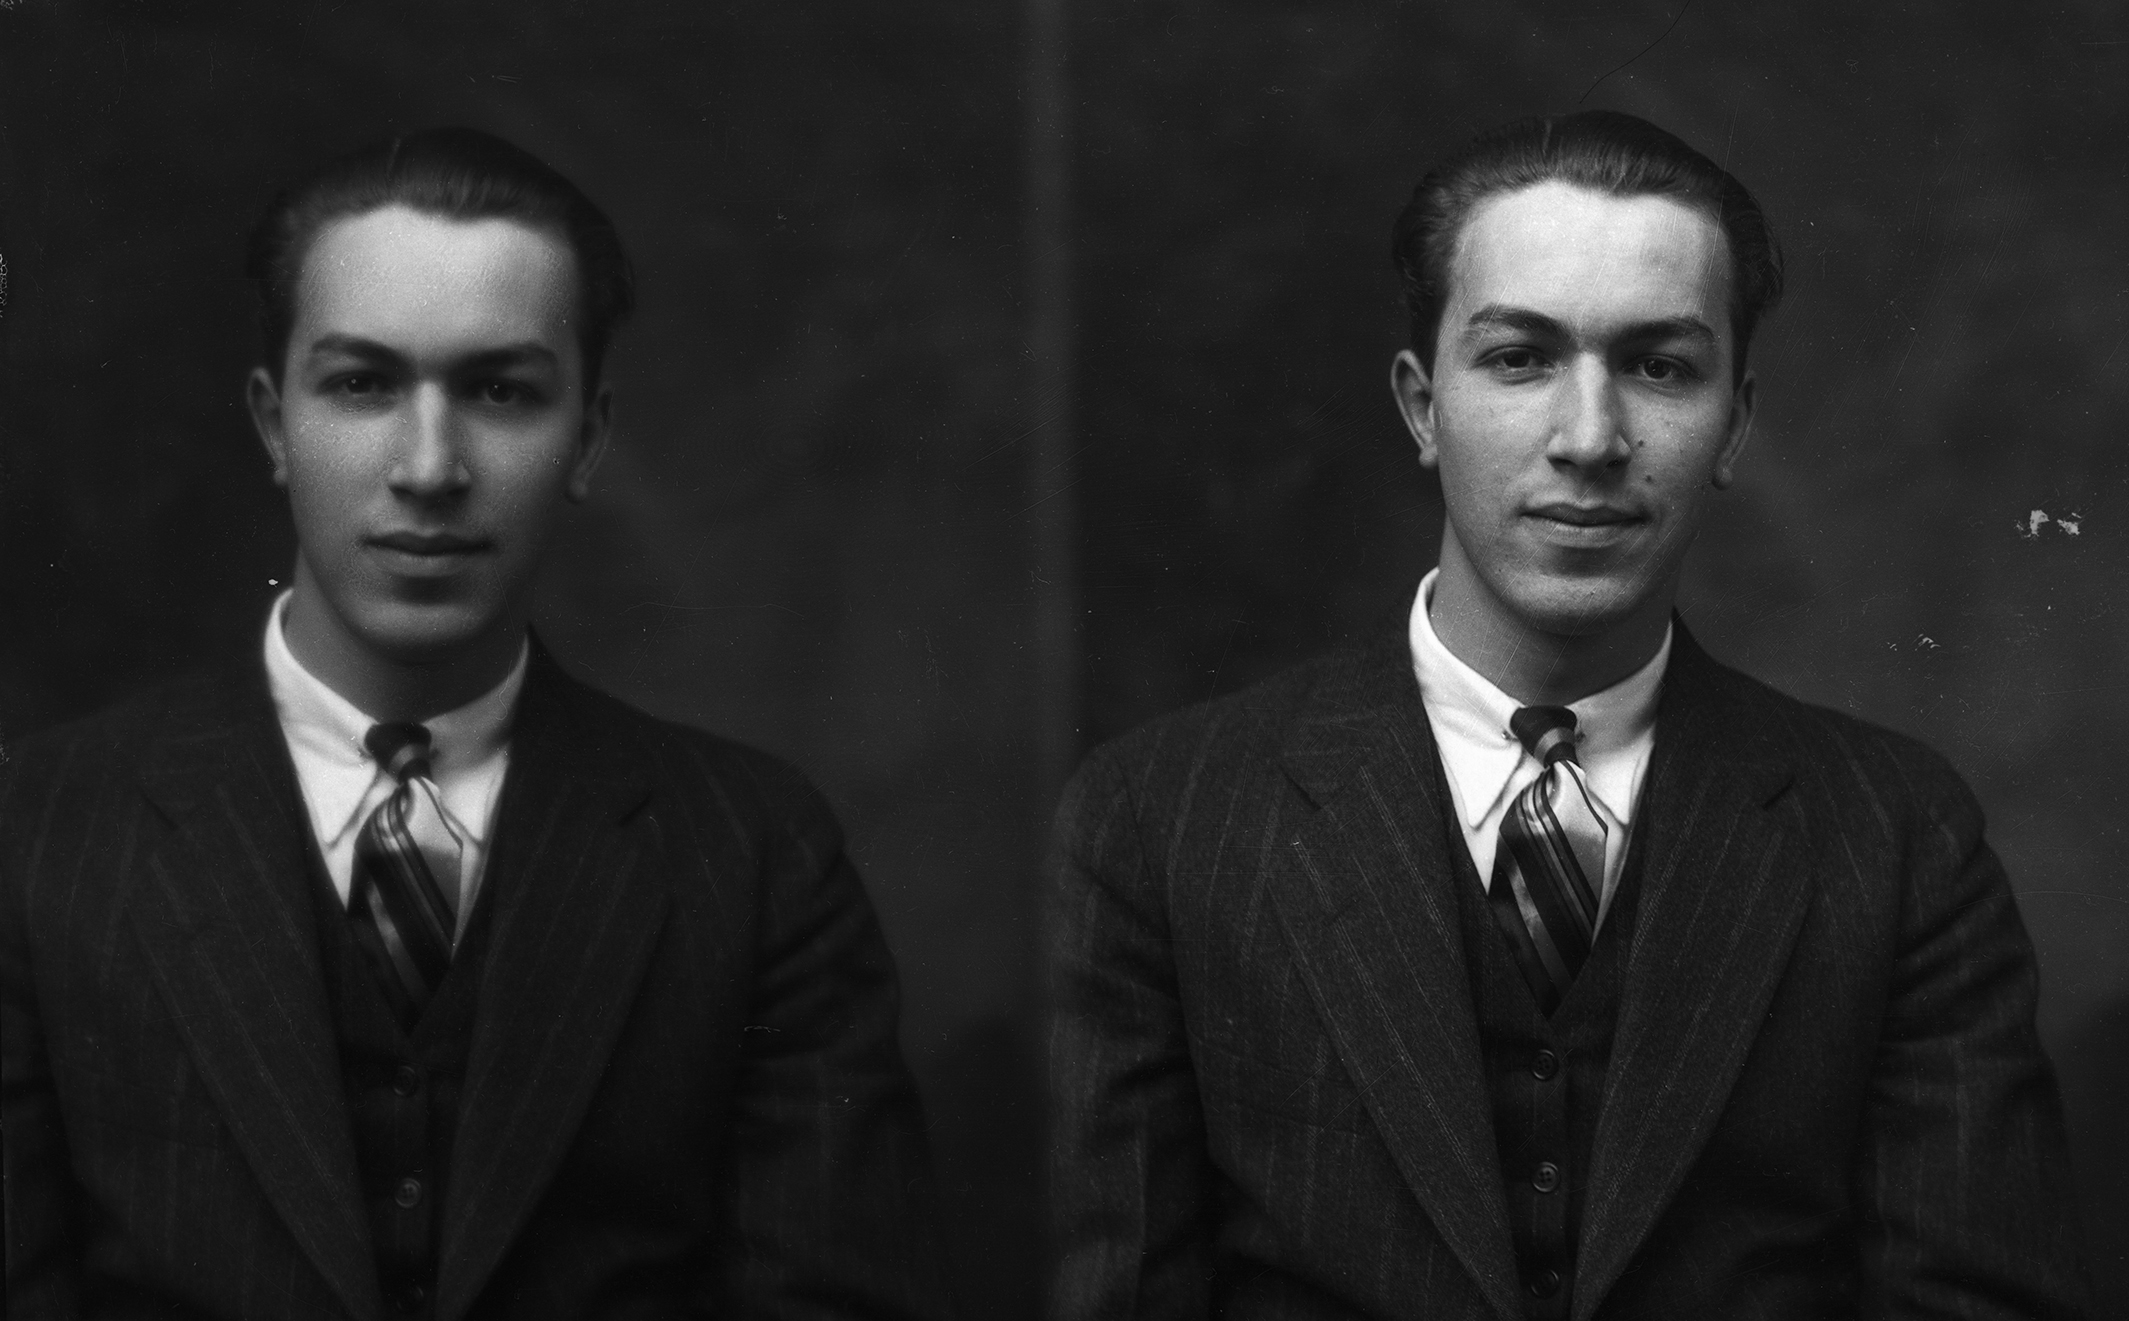 Adam Clayton Powell Jr. as a student at Colgate, circa 1930